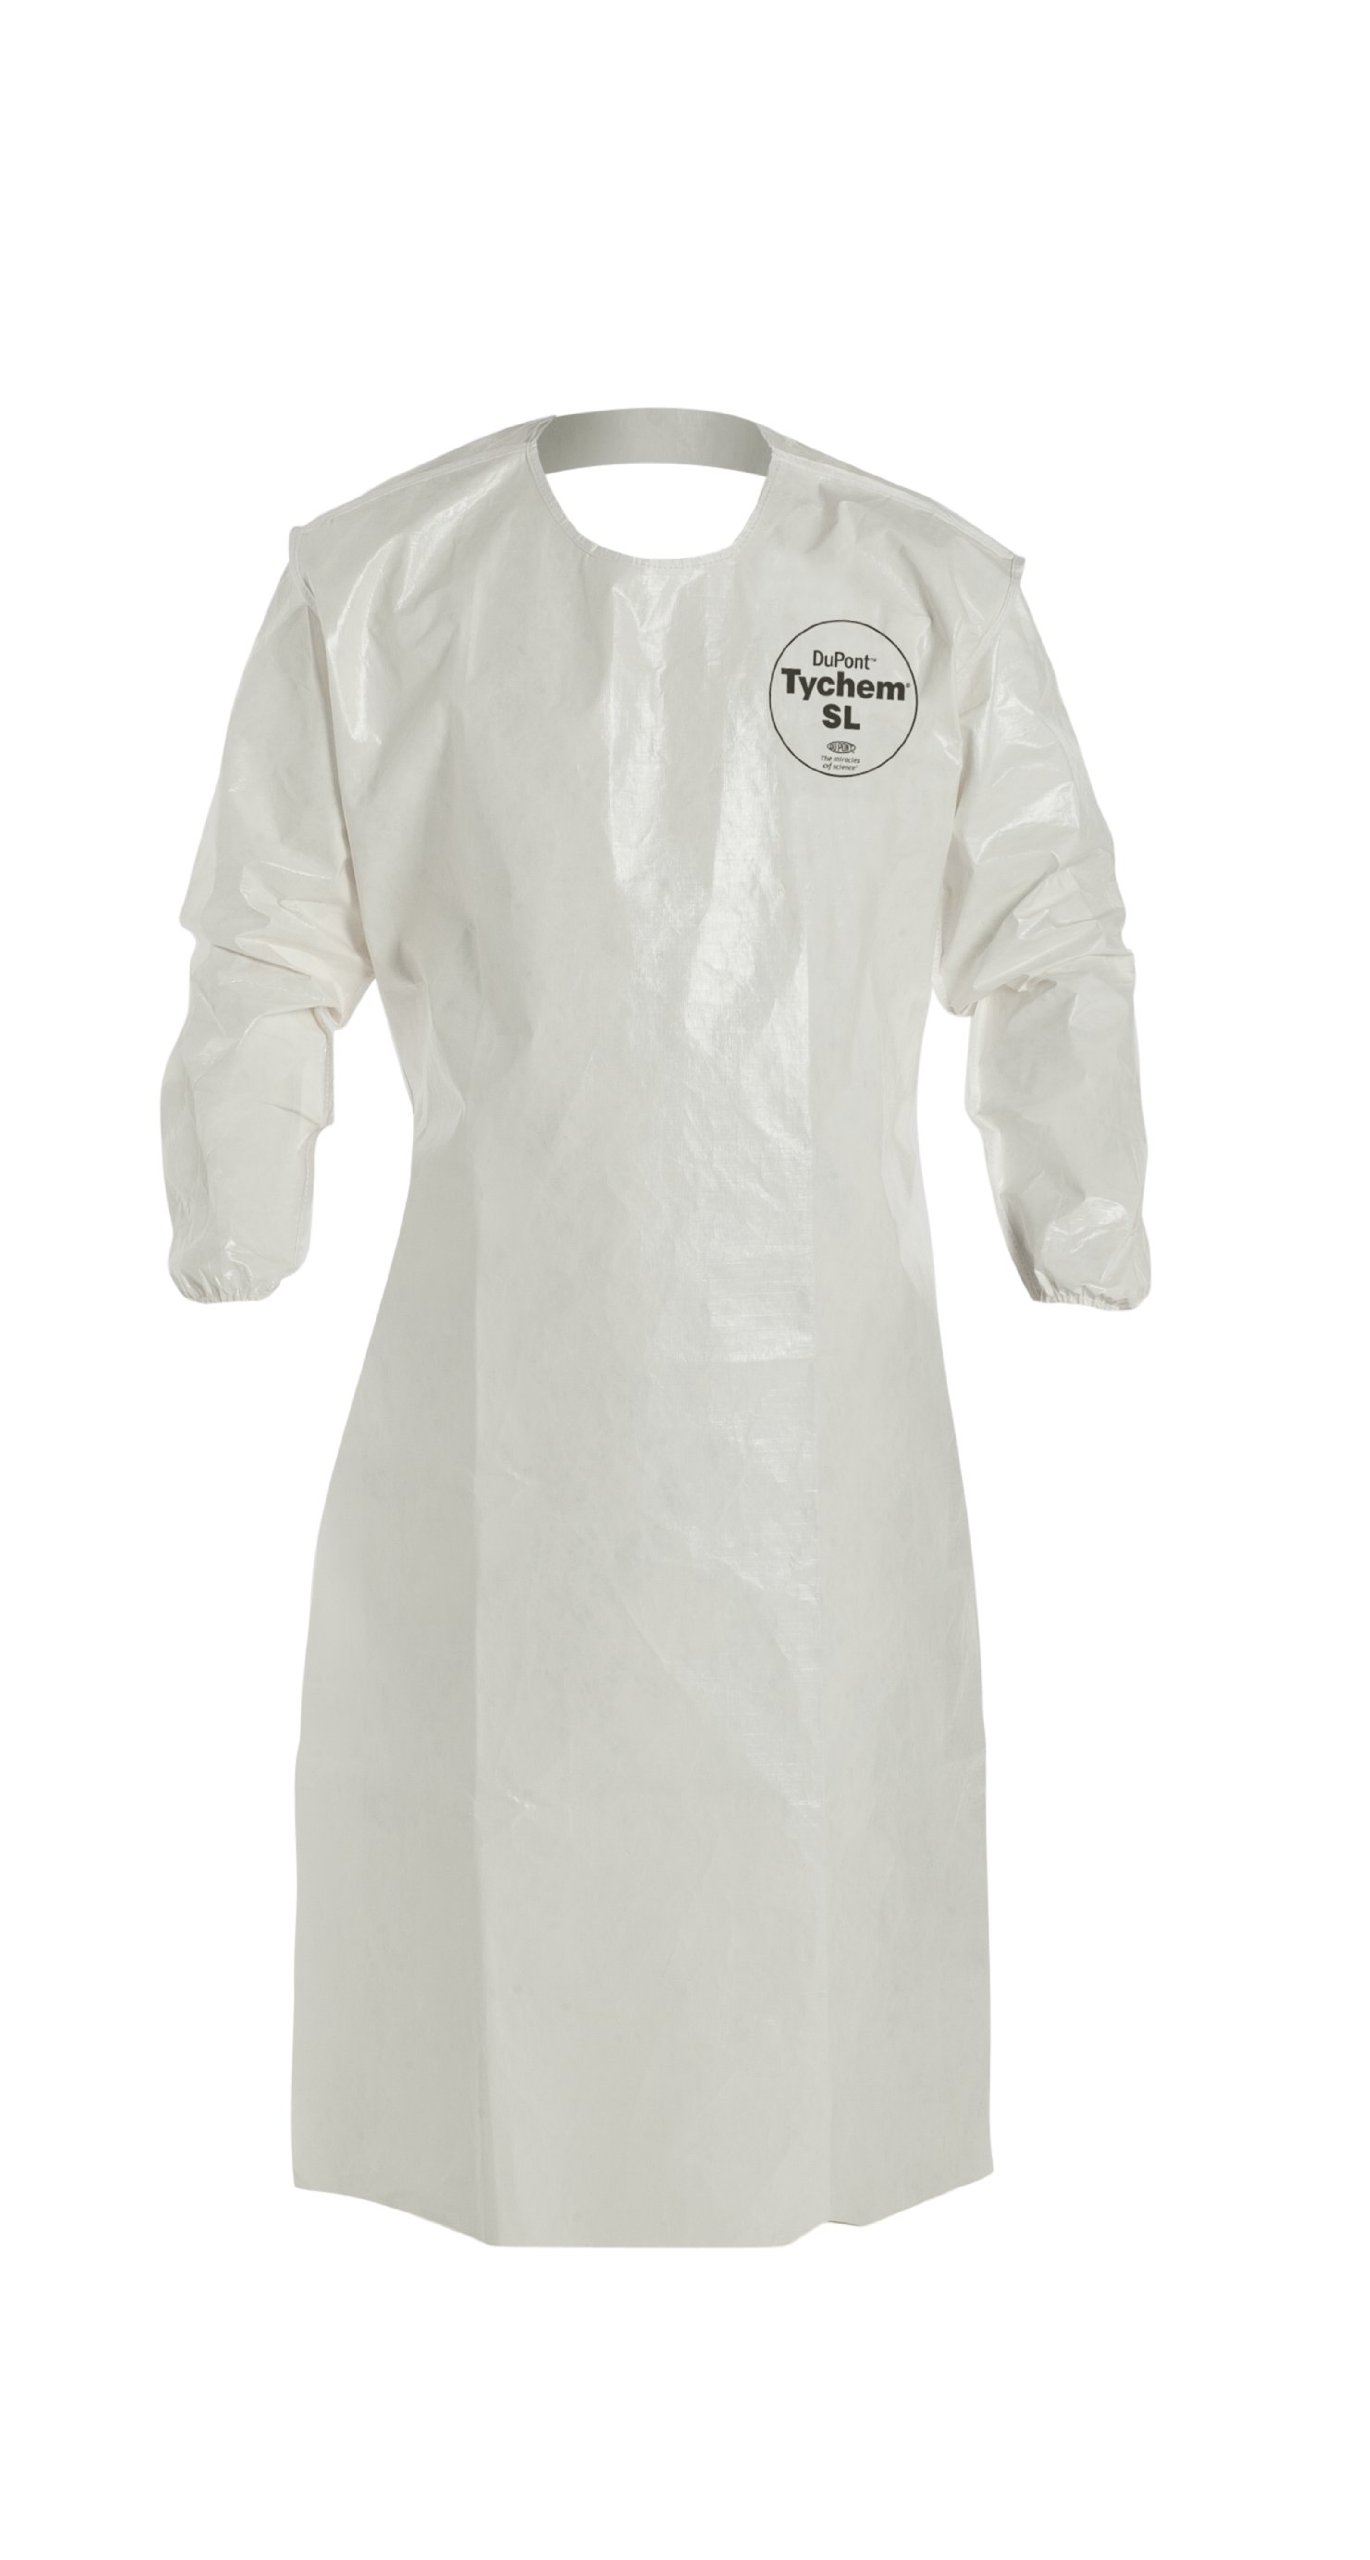 DuPont Tychem 4000 SL278B Sleeved Apron with Bound Seams, Disposable, Elastic Cuff, Universal Size, White (Pack of 12) by DuPont